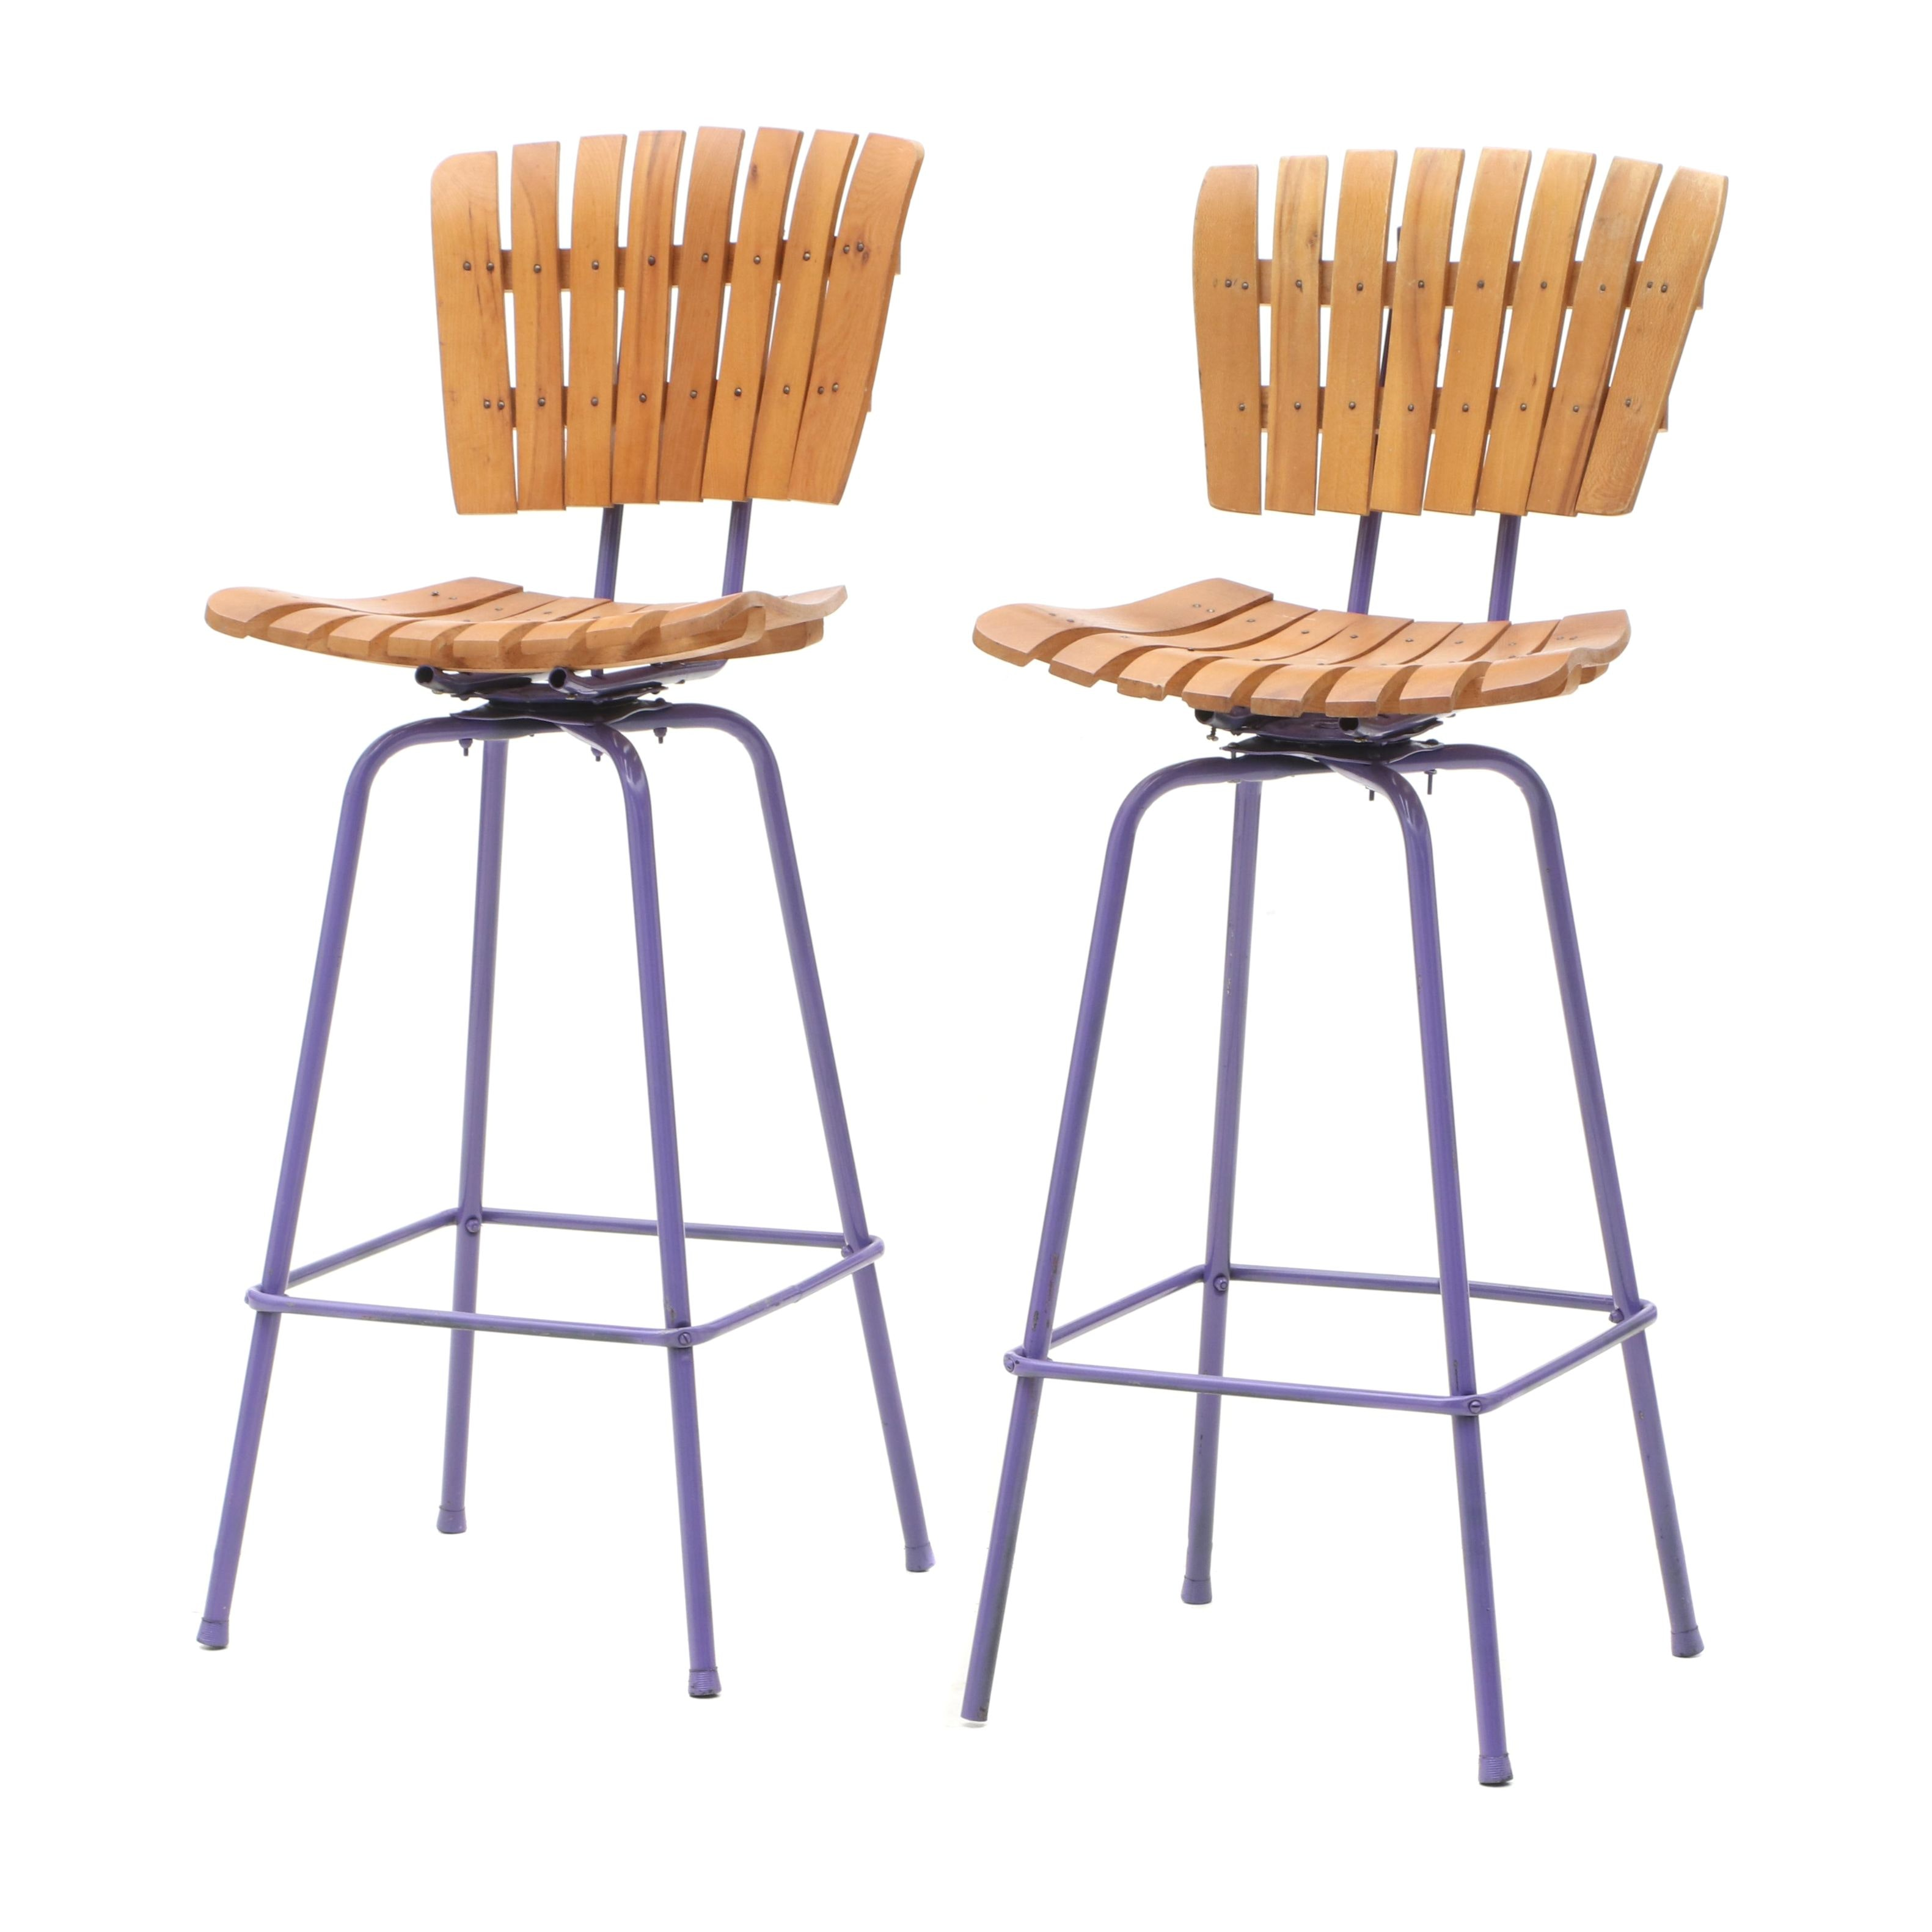 Mid Century Modern Wood and Metal Barstools in the Style of Umanoff